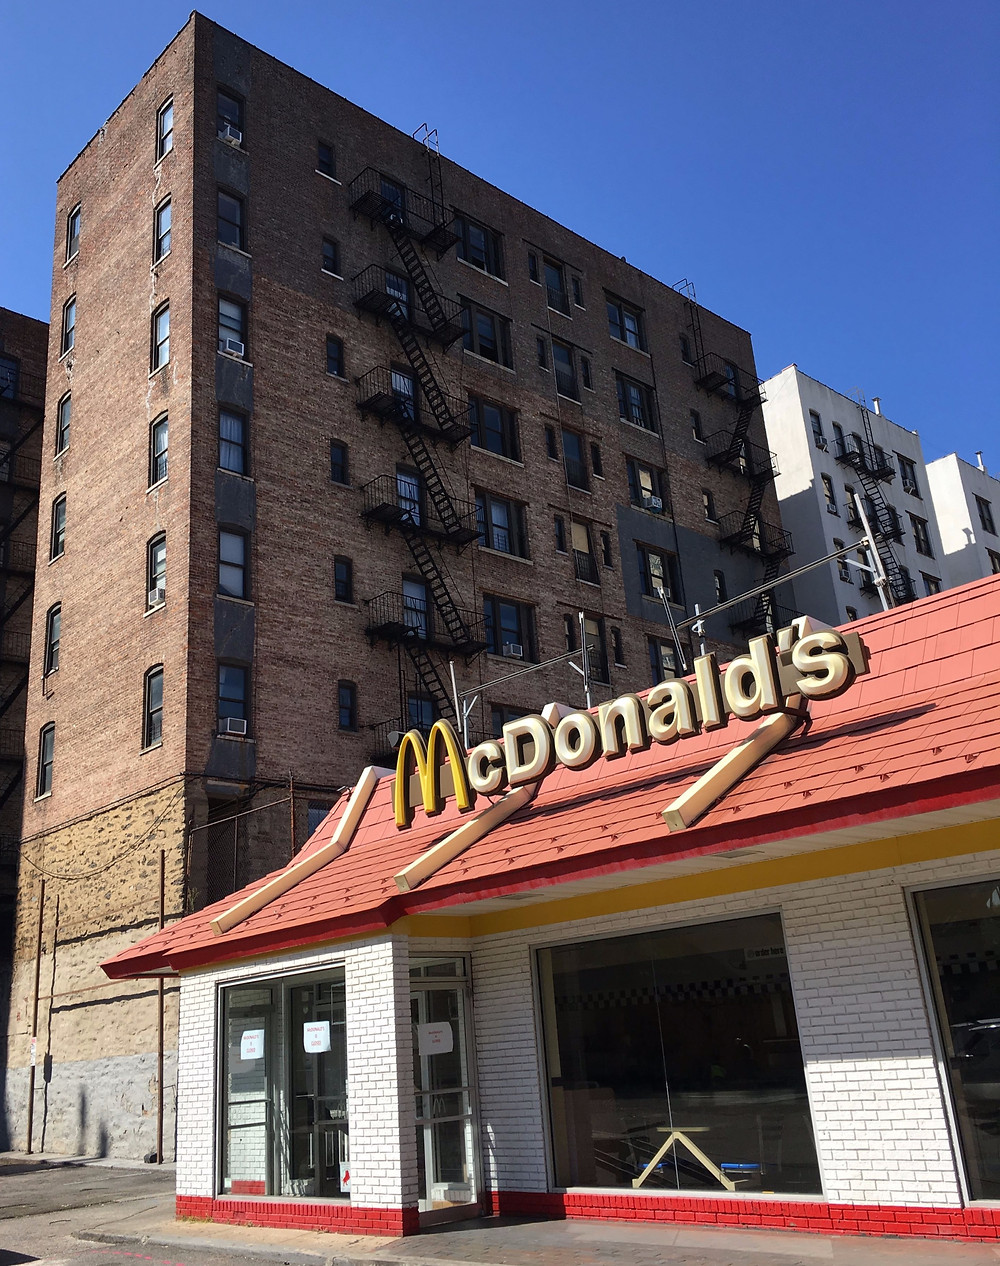 Columbia replacing shuttered McDonald's on 125th Street with 34-story residential tower